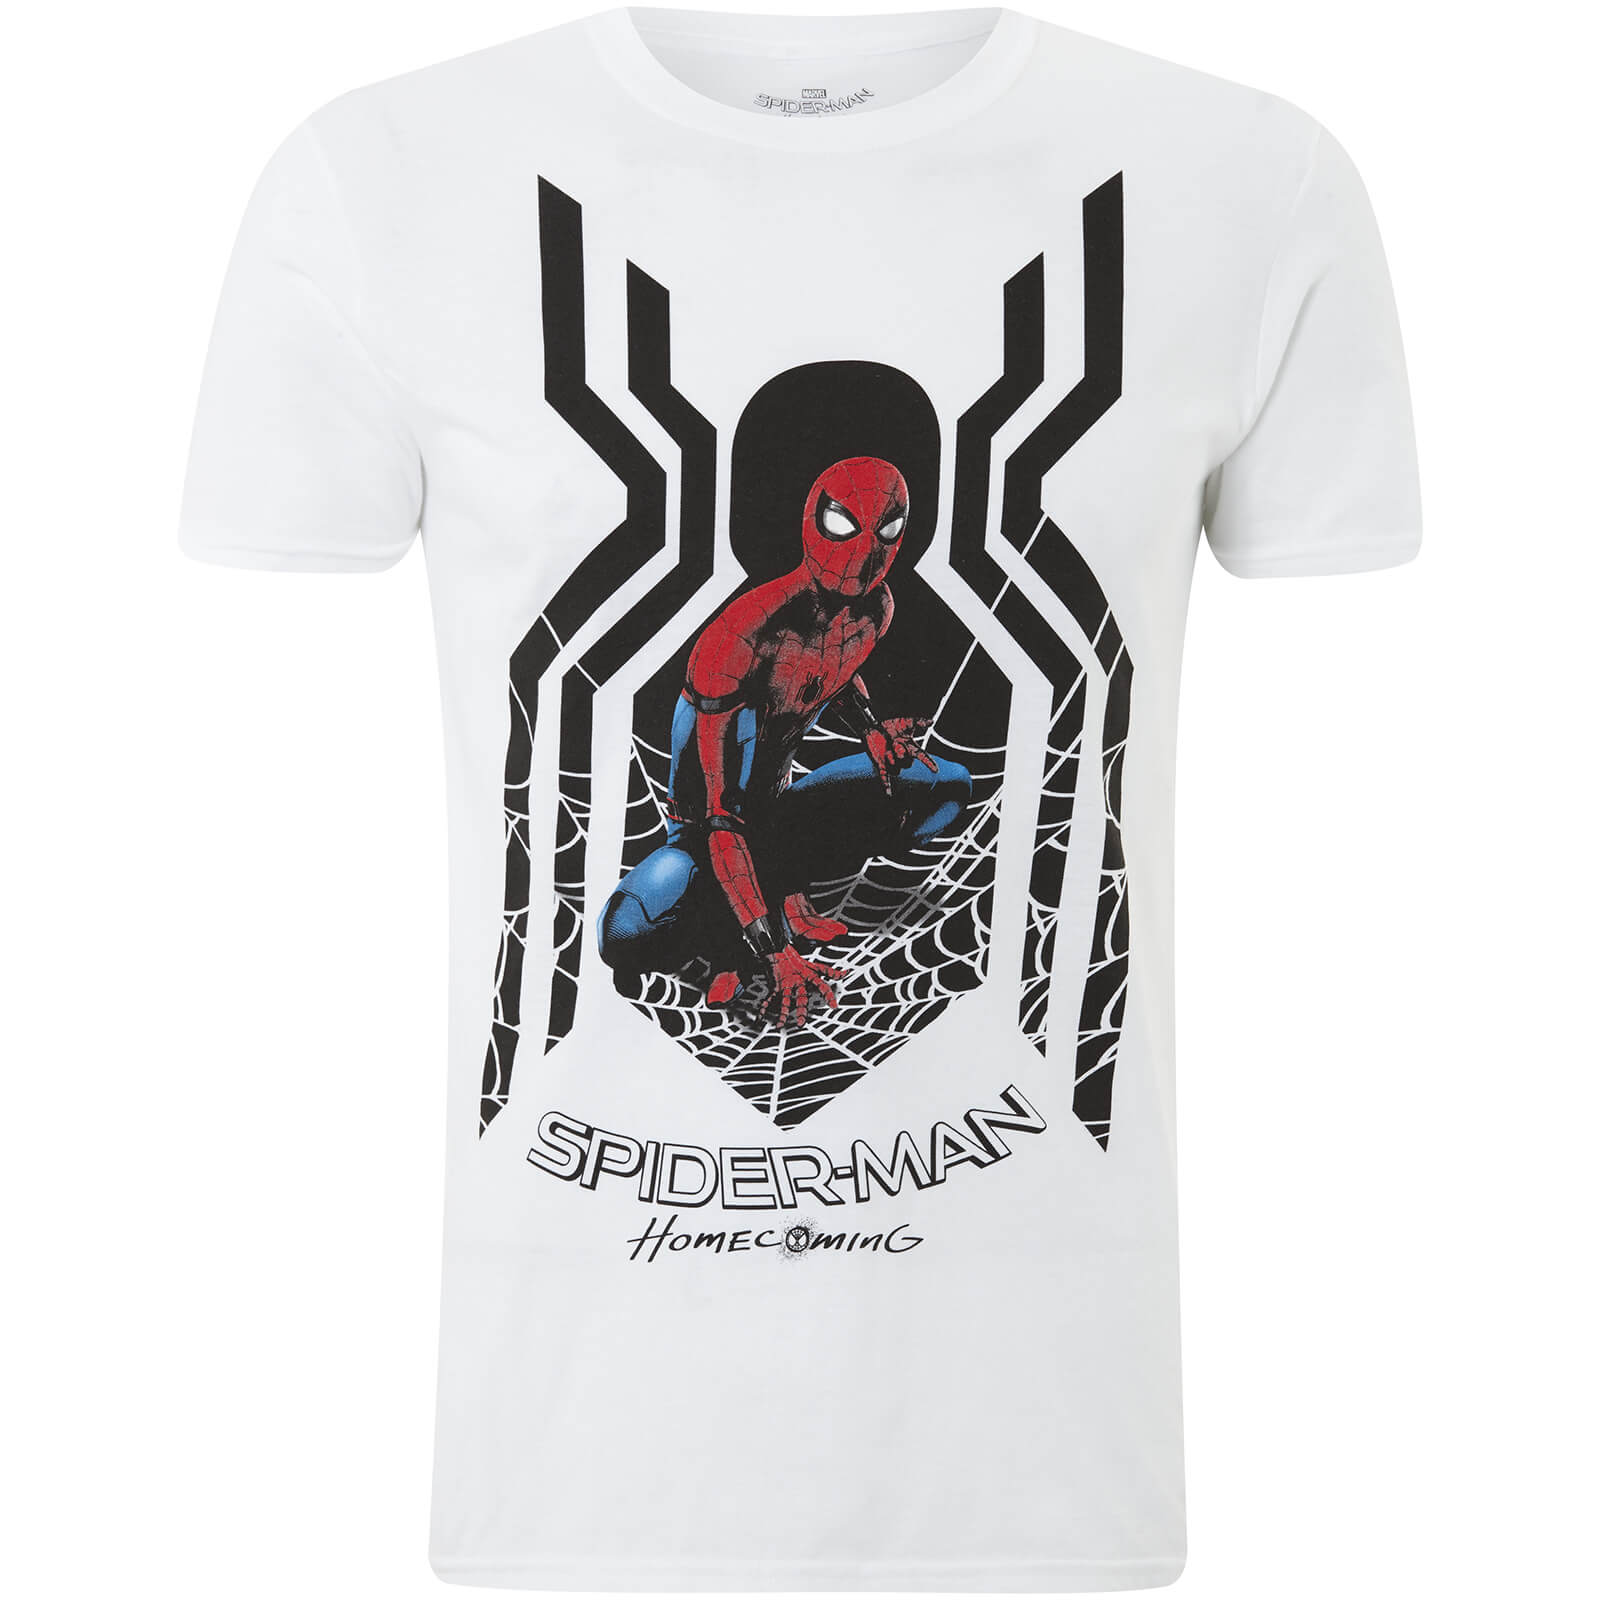 16b646e0 Marvel Spider-Man Men's Homecoming Spider Symbol T-Shirt - White  Merchandise | Zavvi